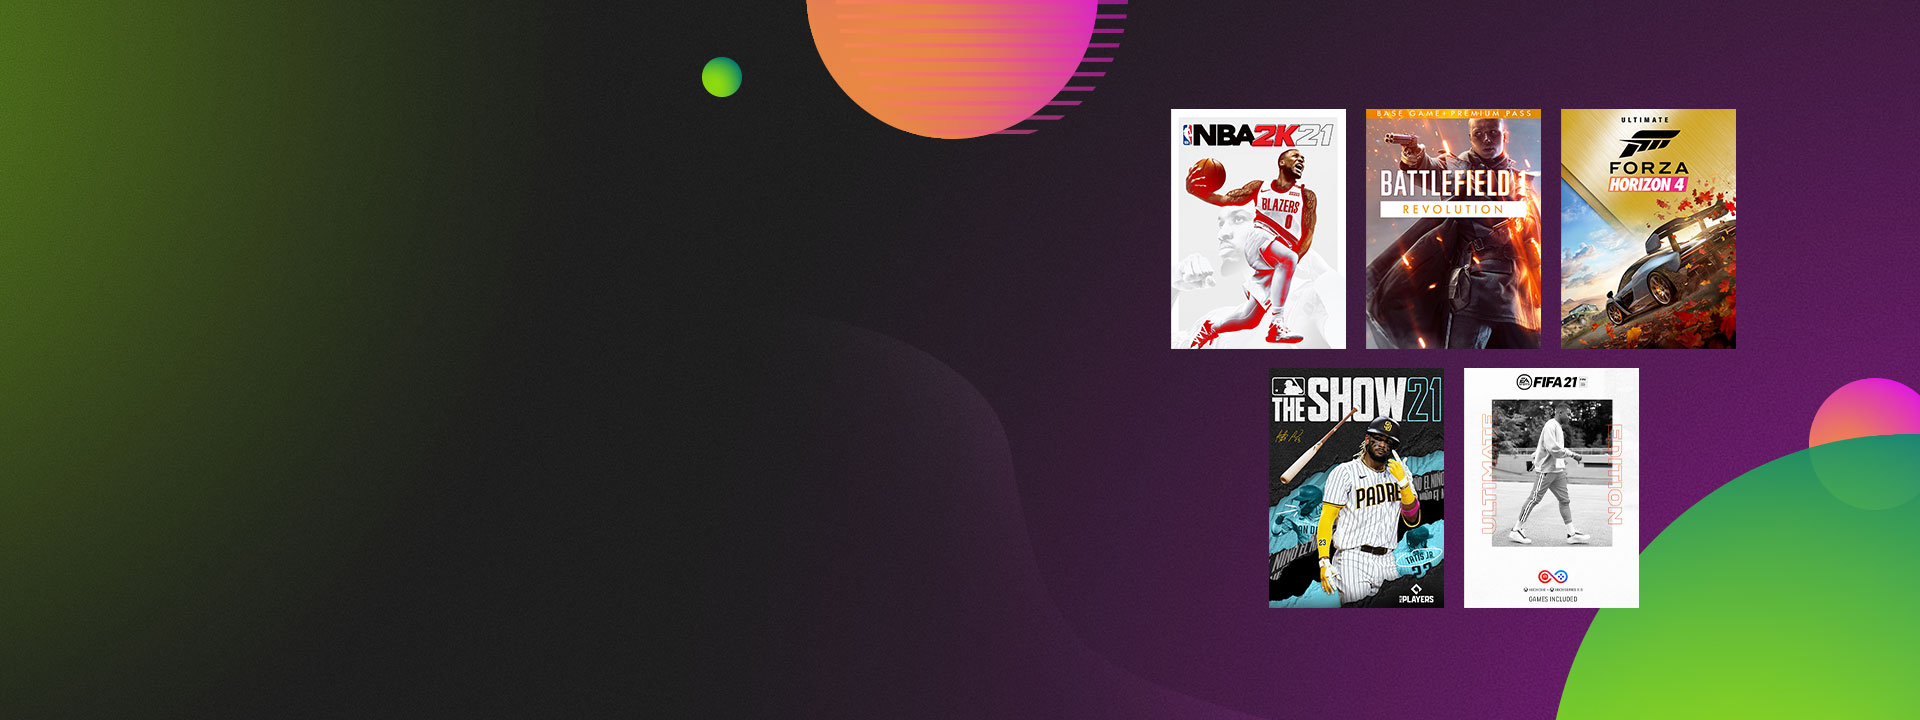 Box shots from games that are part of the Ultimate Game Sale, including NBA 2K21 and Forza Horizon 4 Ultimate.